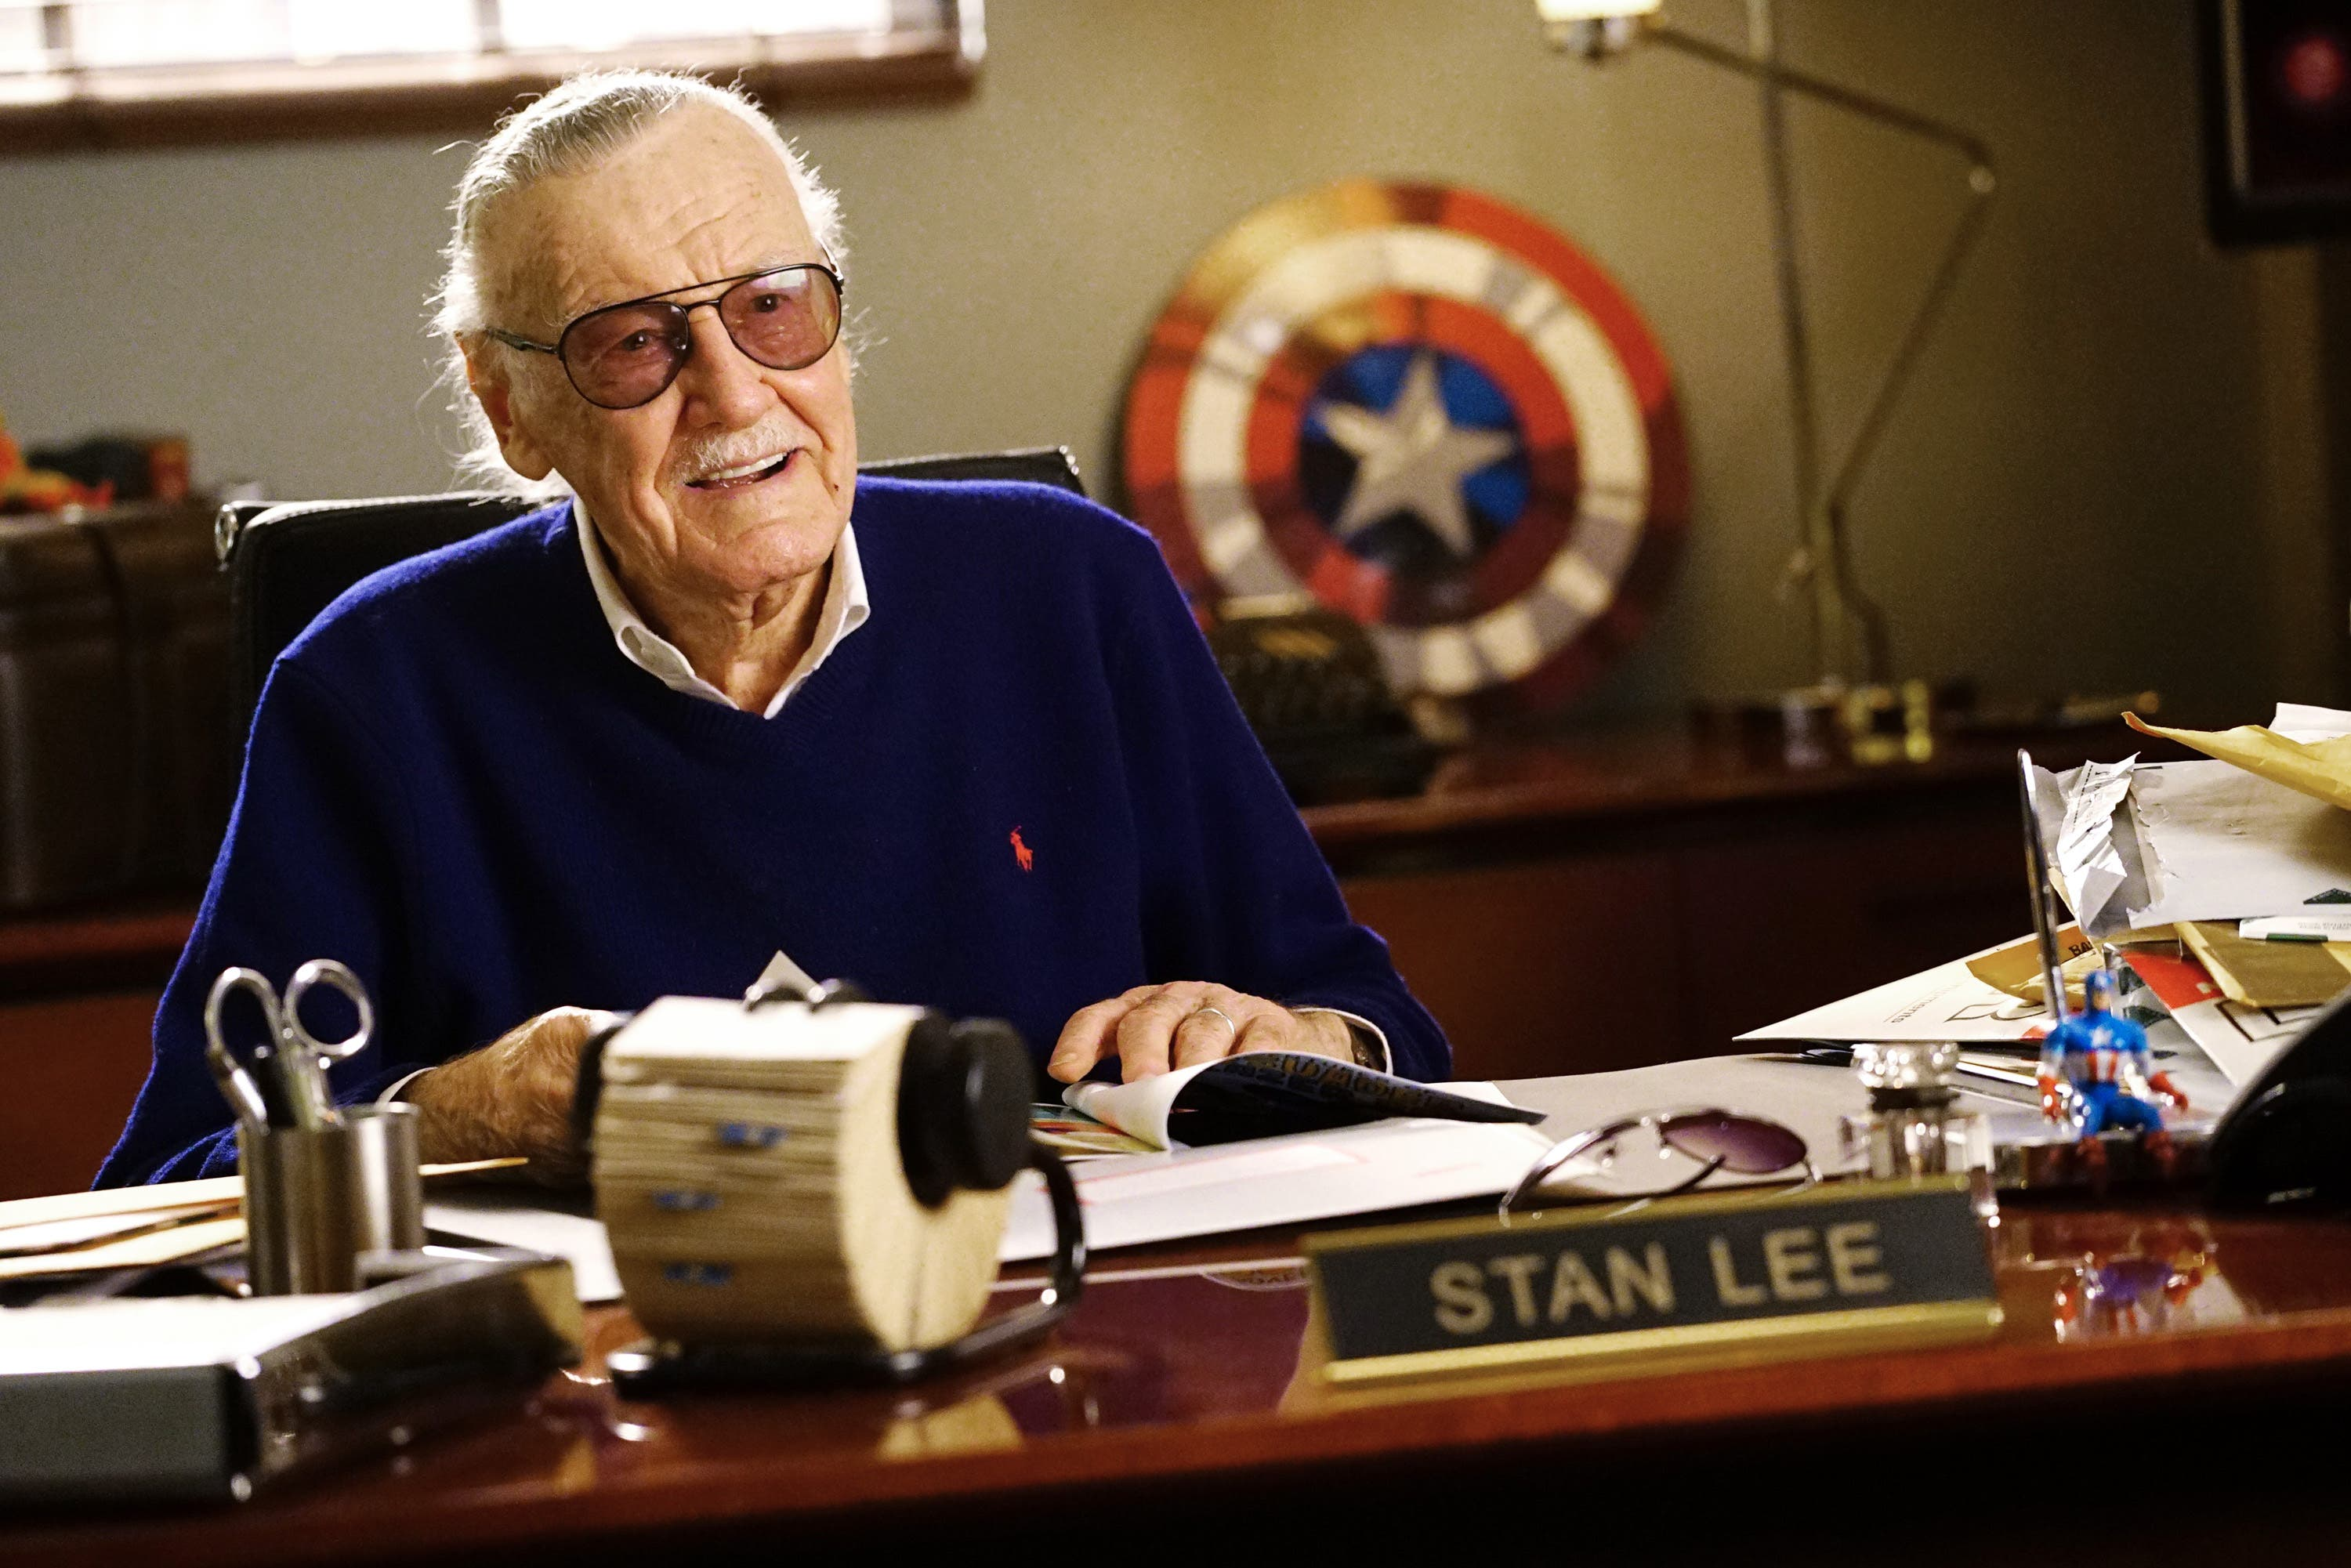 Cartoonist Stan Lee at his desk